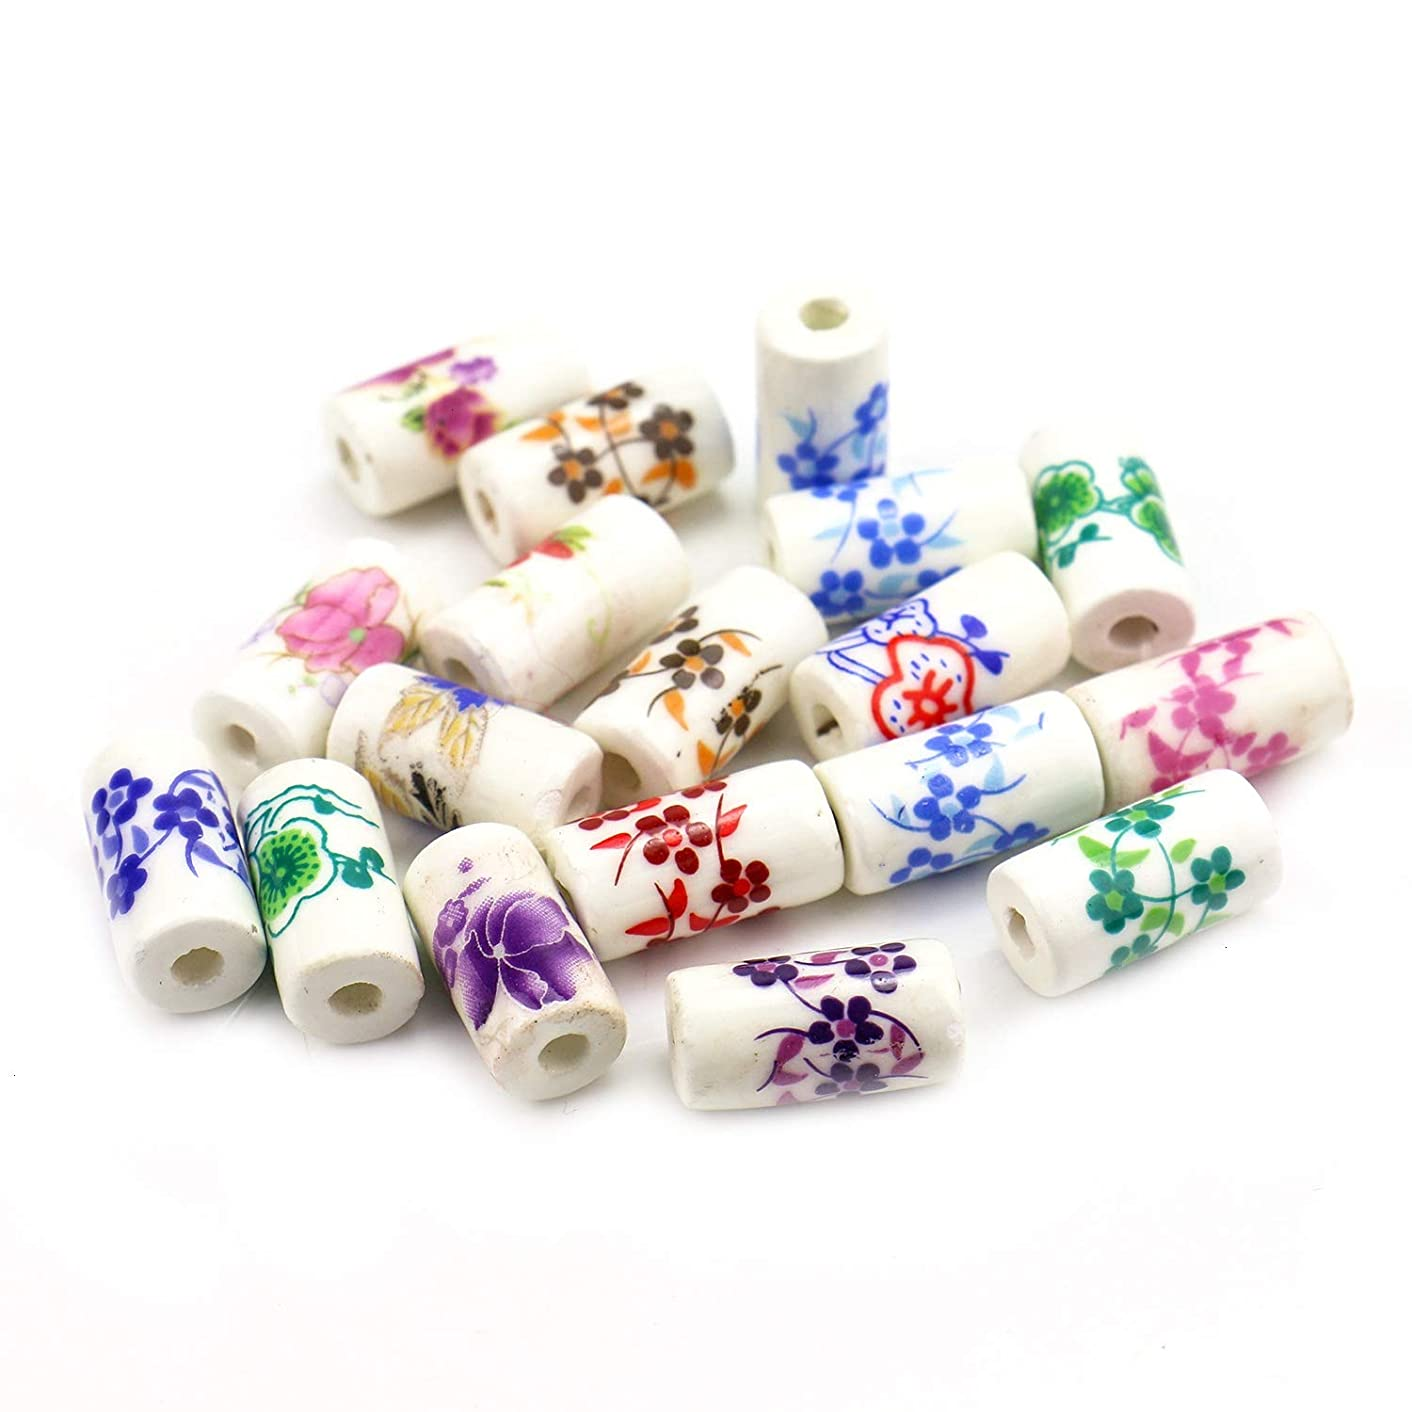 Monrocco 36 PCS Mixed Flower Ceramic Beads Traditional Chinese Stlye Floral Tube Ceramic Loose Bead